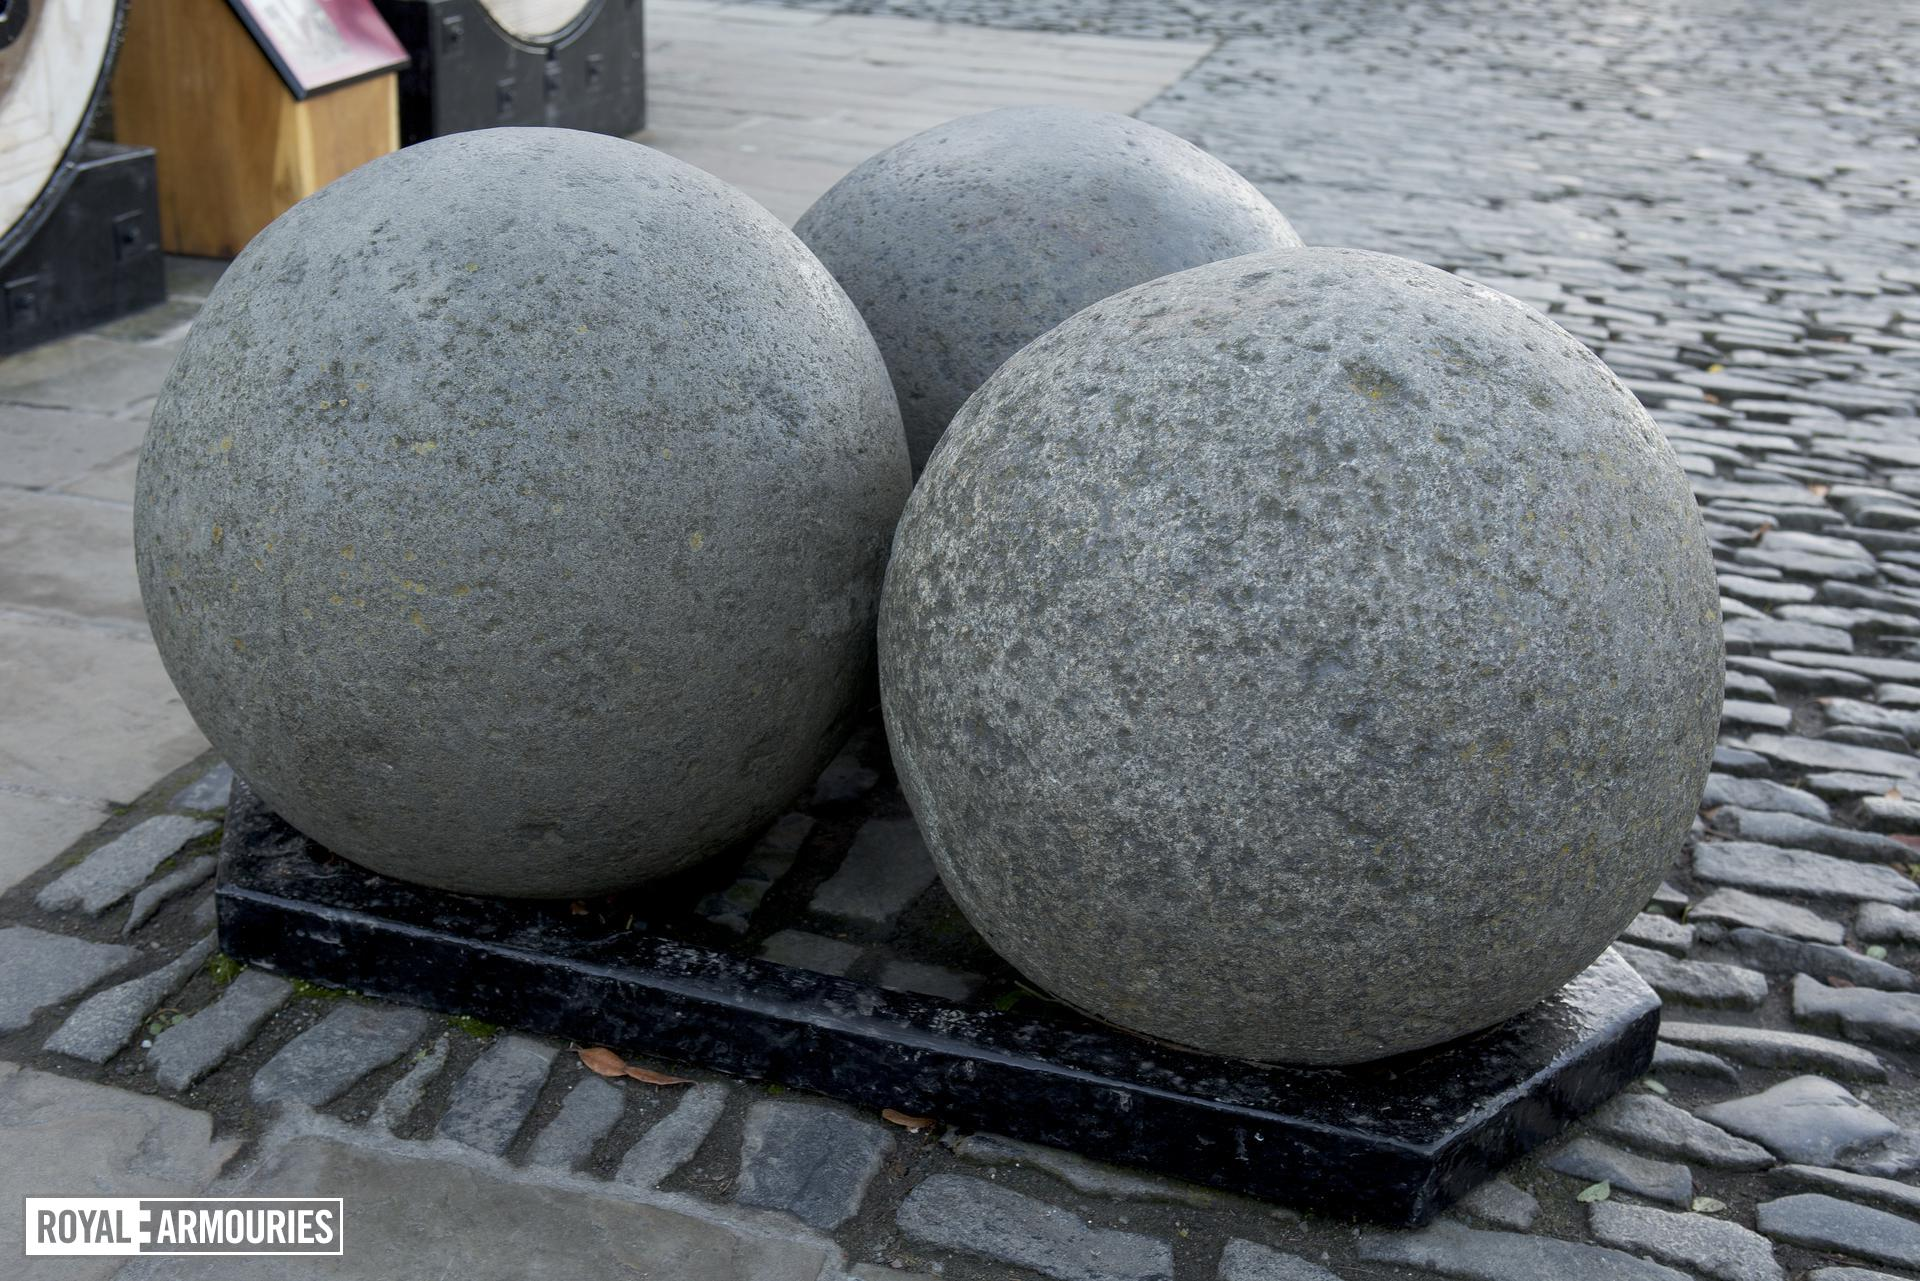 Cannon balls for iron bombard known as Mons Meg. Flemish, Mons, mid-15th century (XIX.13) On loan to Historic Scotland and on display at Edinburgh Castle.